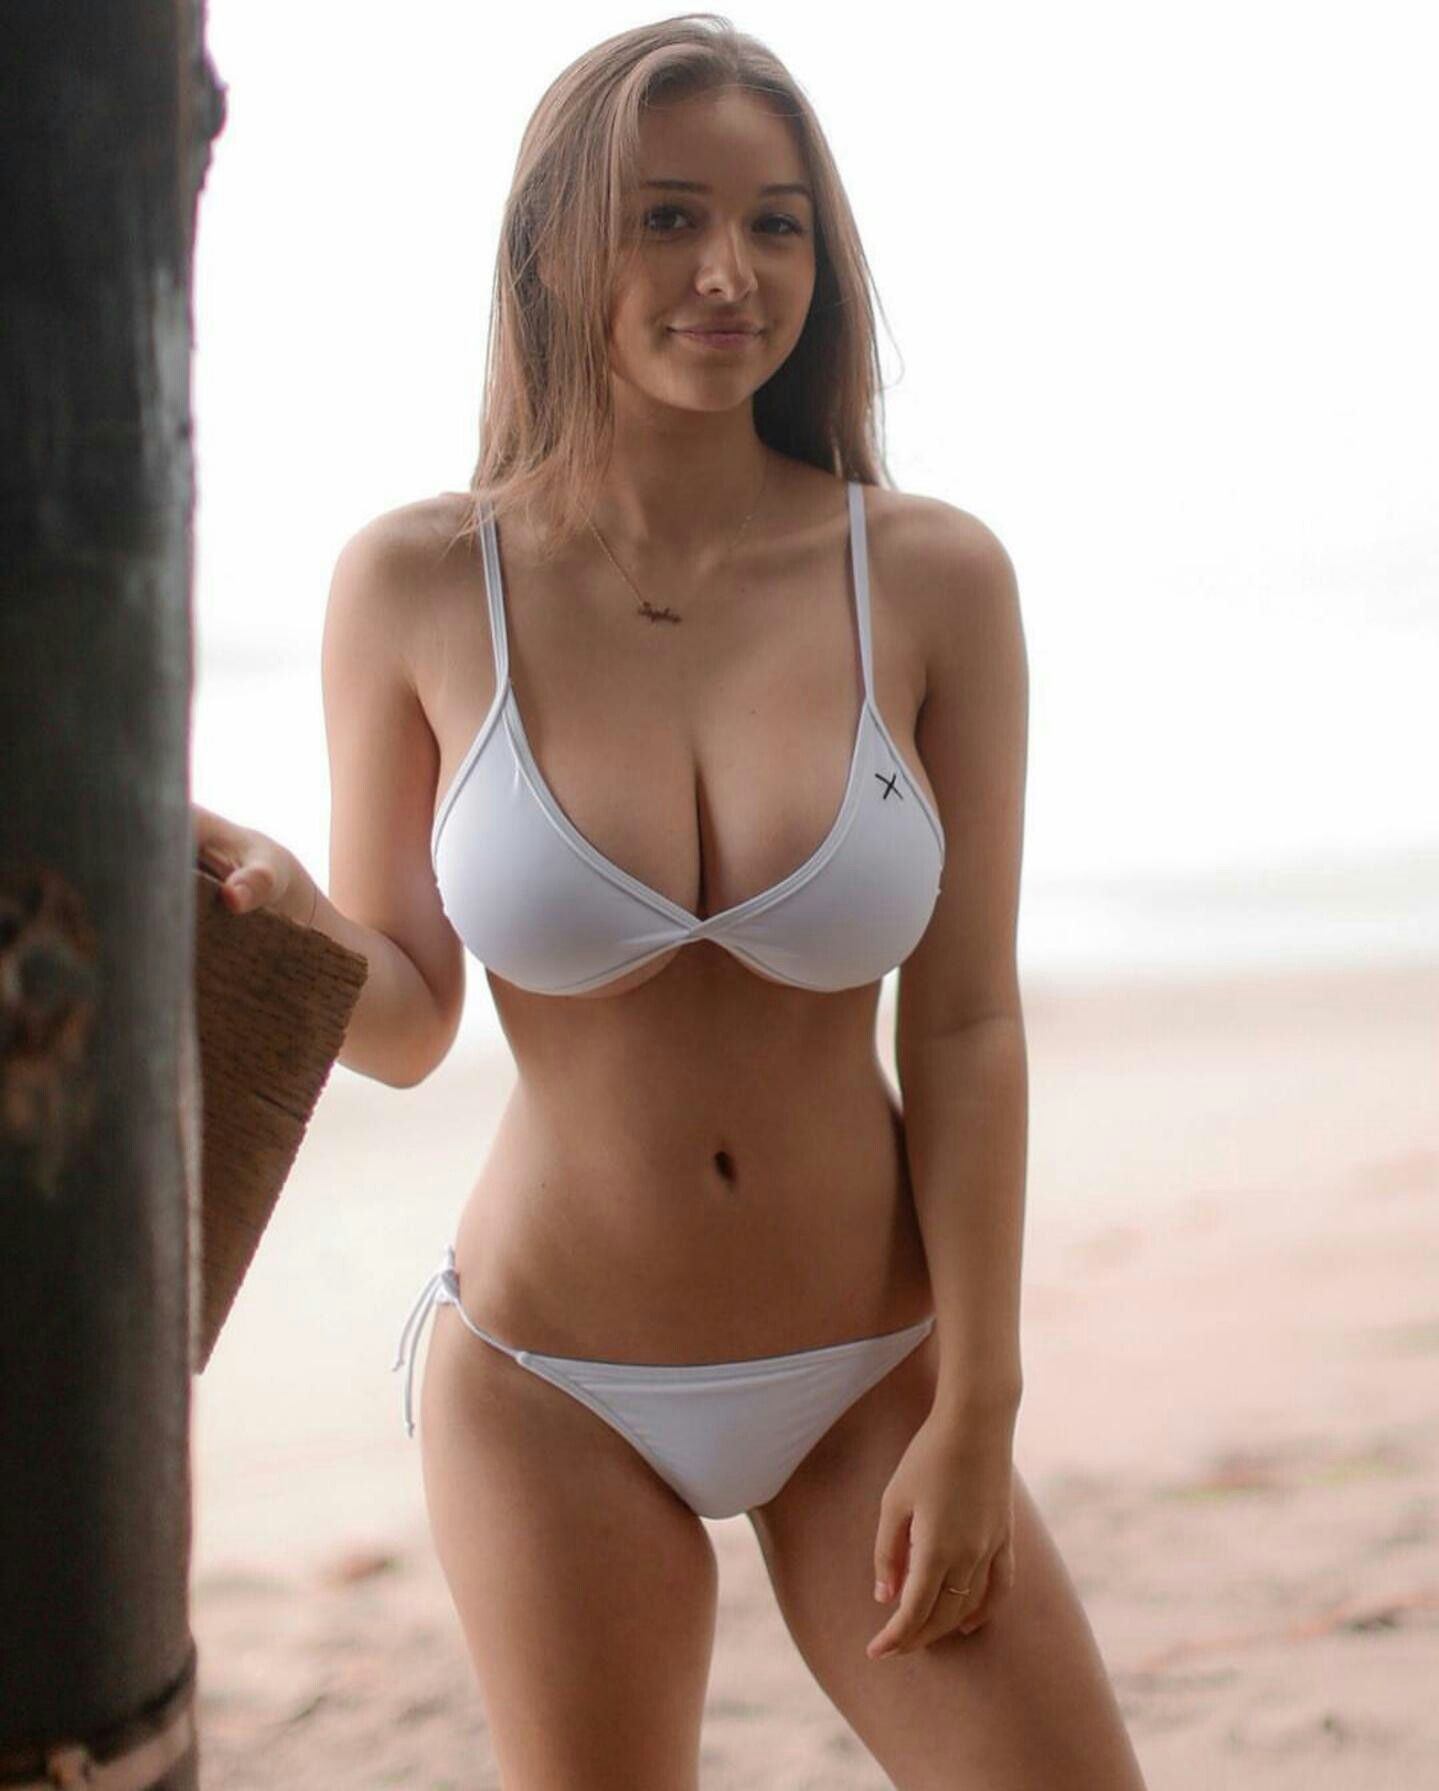 Busty blonde sophi photos